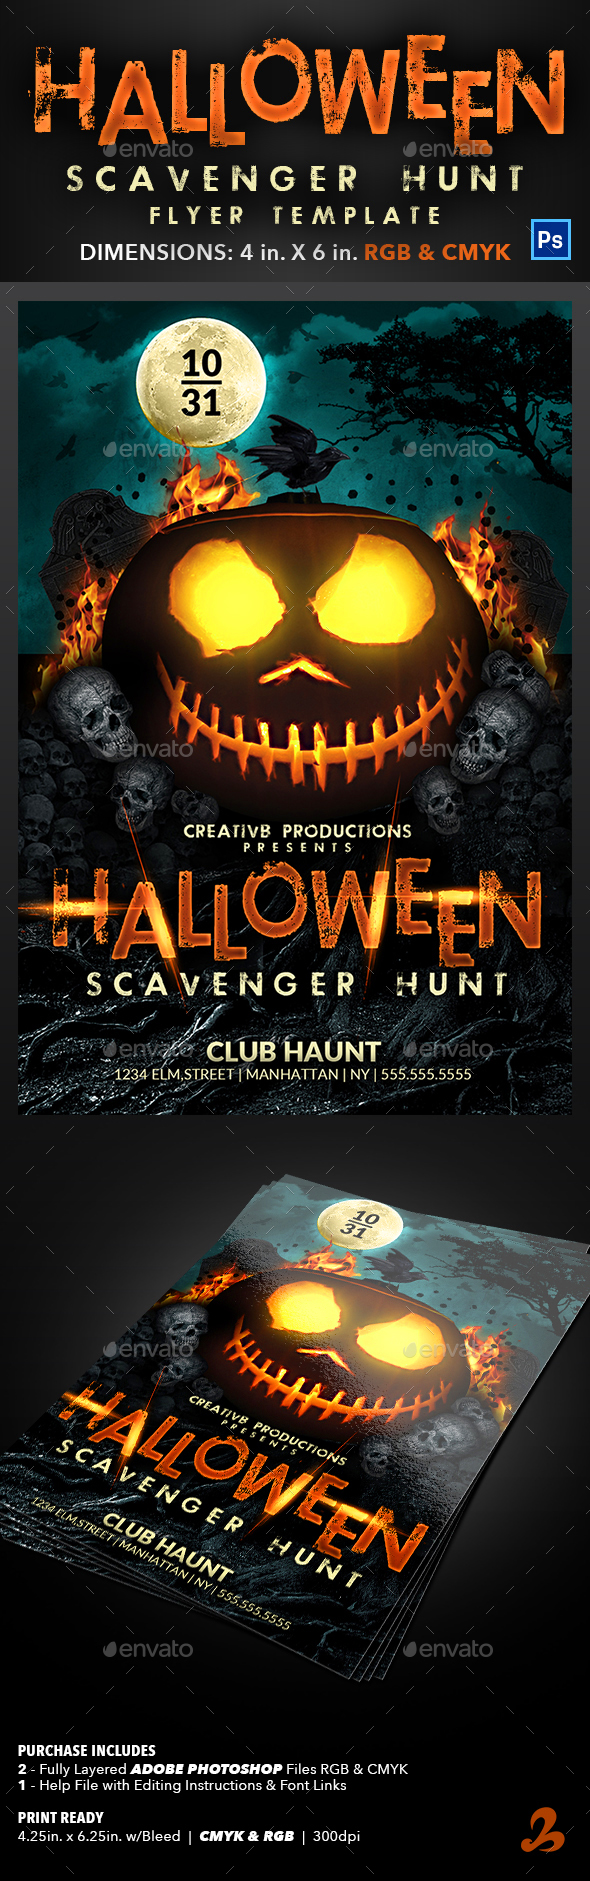 Halloween Scavenger Hunt Flyer Template - Events Flyers